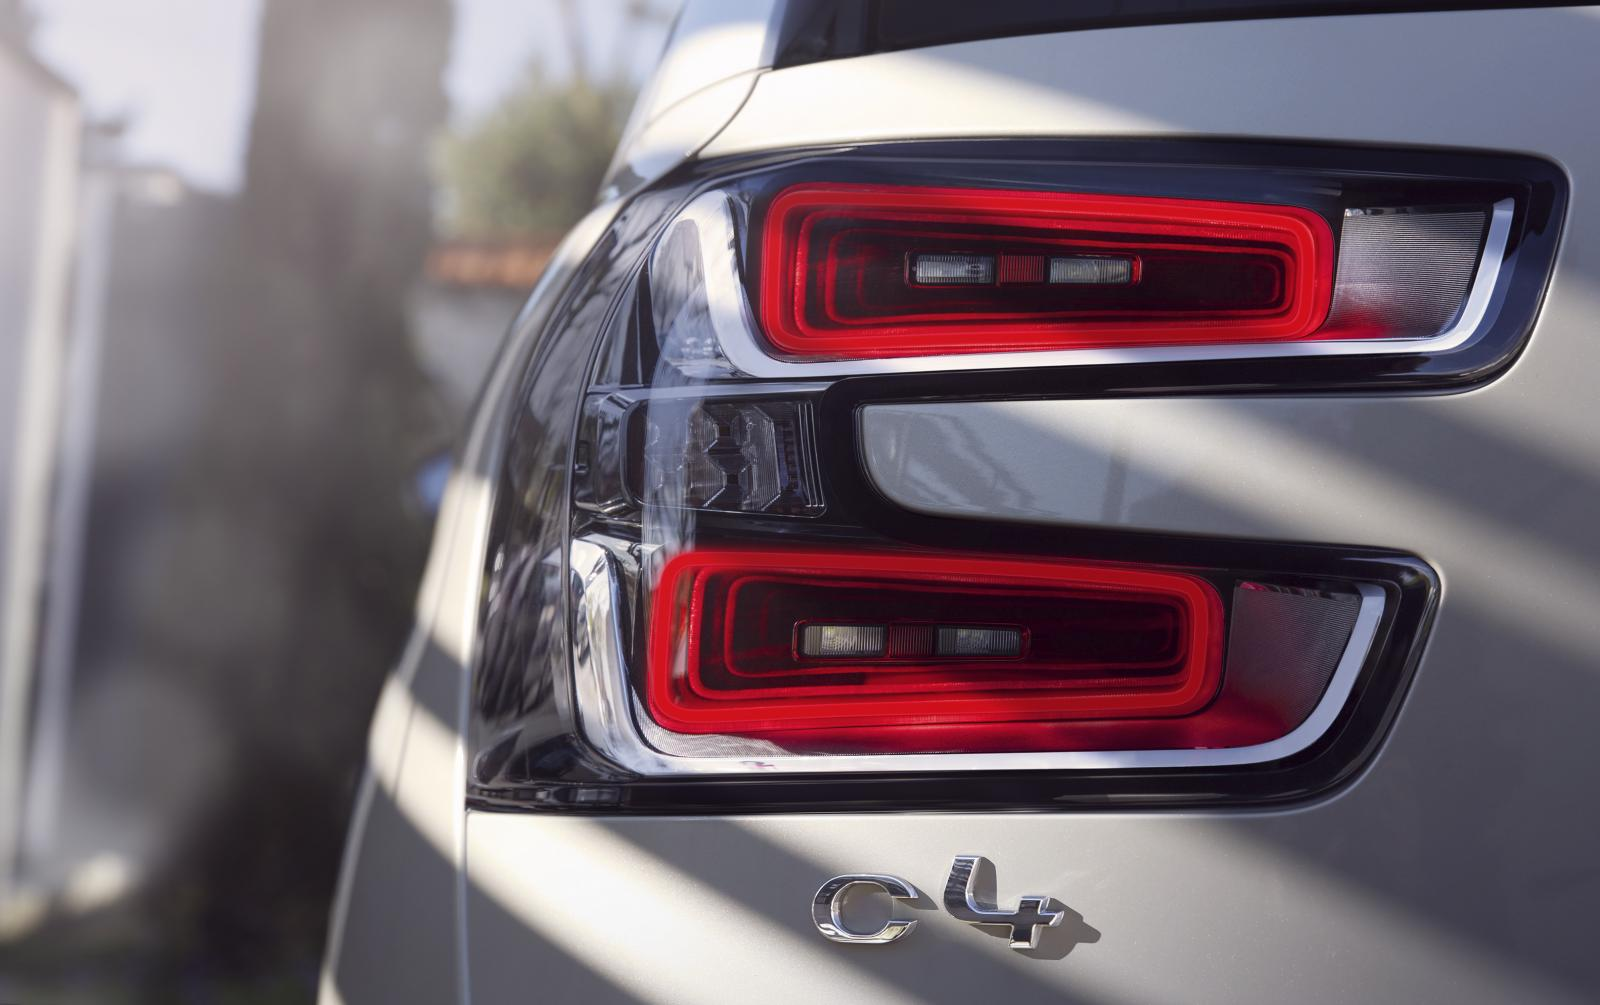 Grand C4 Picasso Shine 2016 rear lights